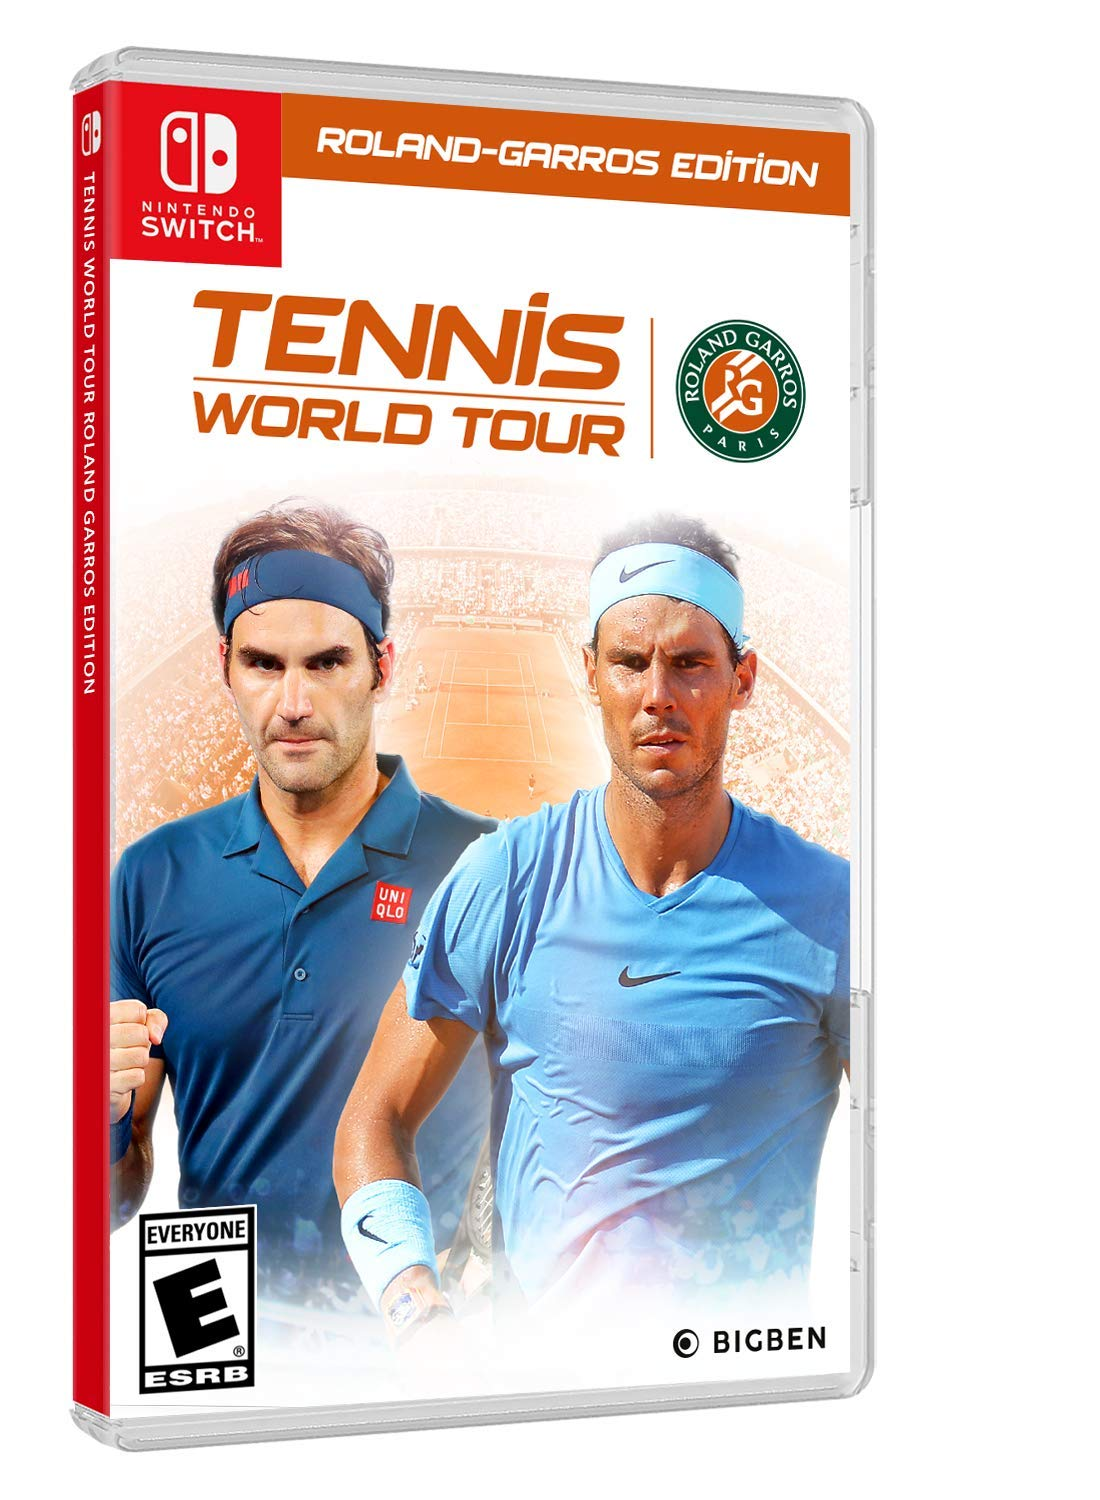 Tennis World Tour Roland-Garros Edition (NSW) - Nintendo Switch